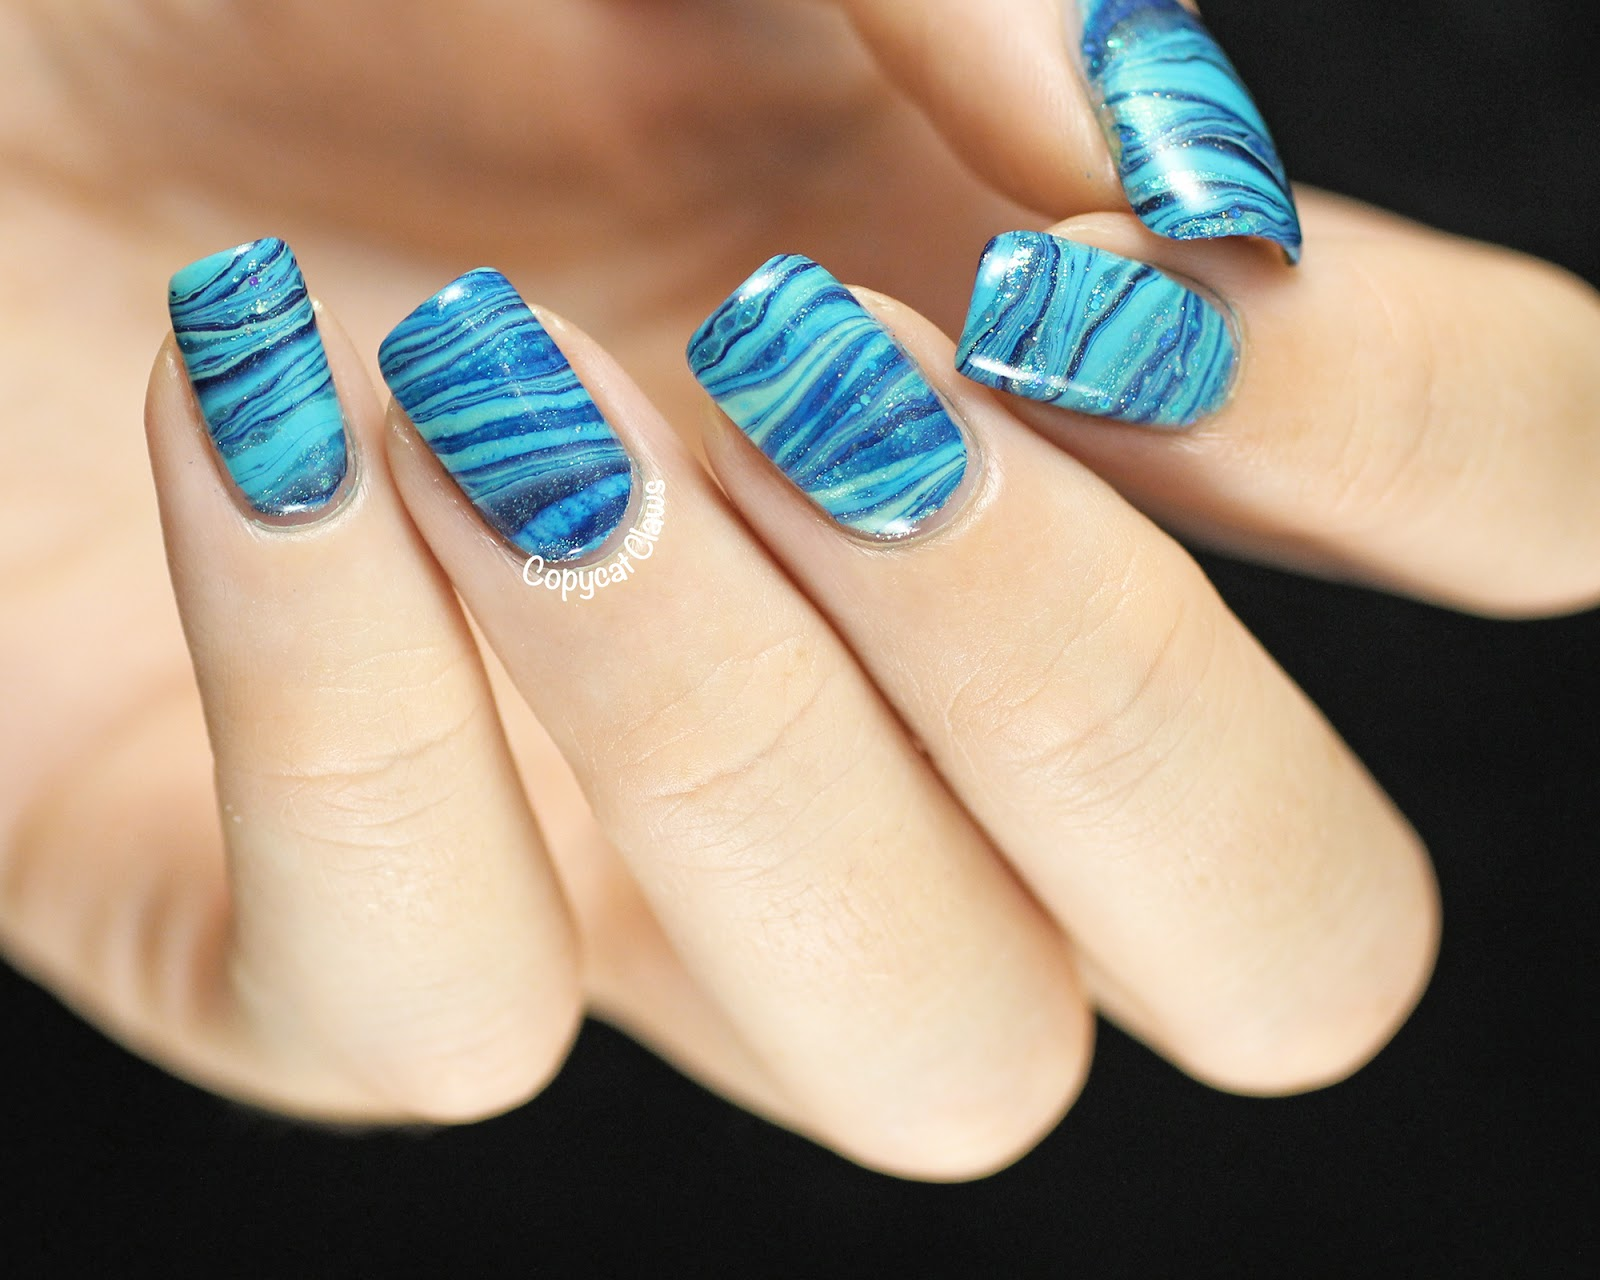 Copycat claws 31dc2014 day 20 blue water marble nail art 31dc2014 day 20 blue water marble nail art prinsesfo Choice Image